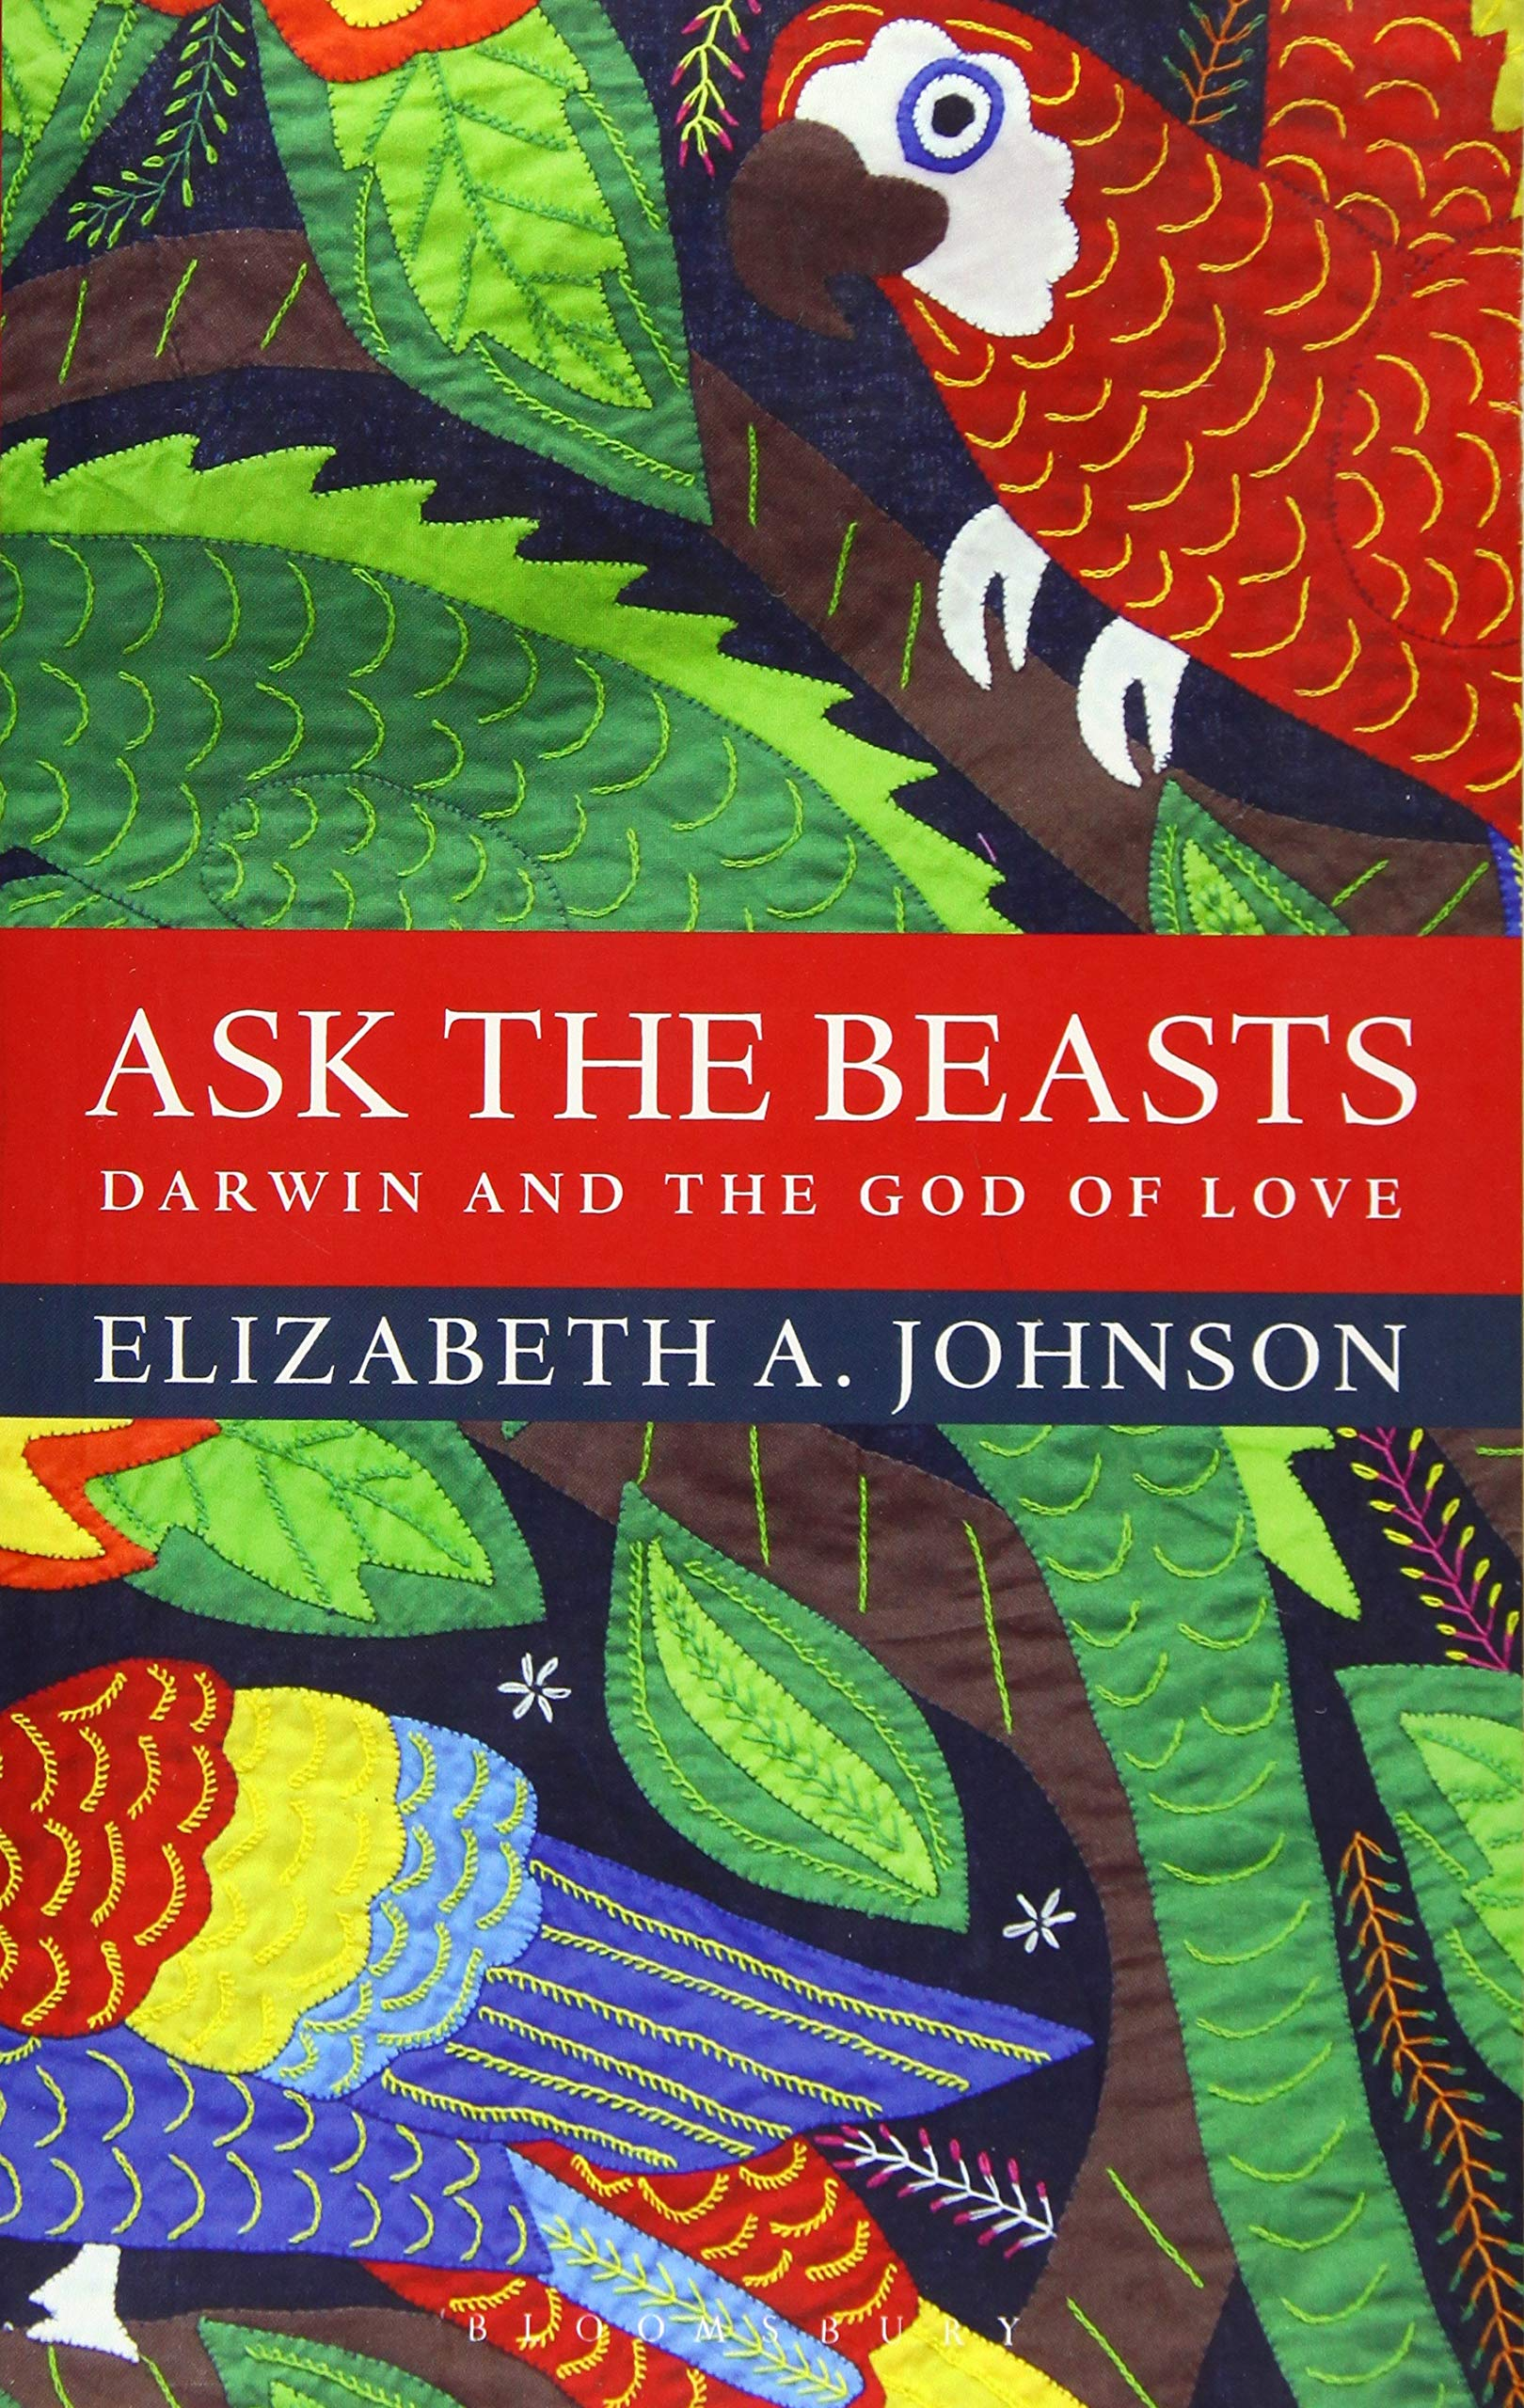 Image OfAsk The Beasts: Darwin And The God Of Love